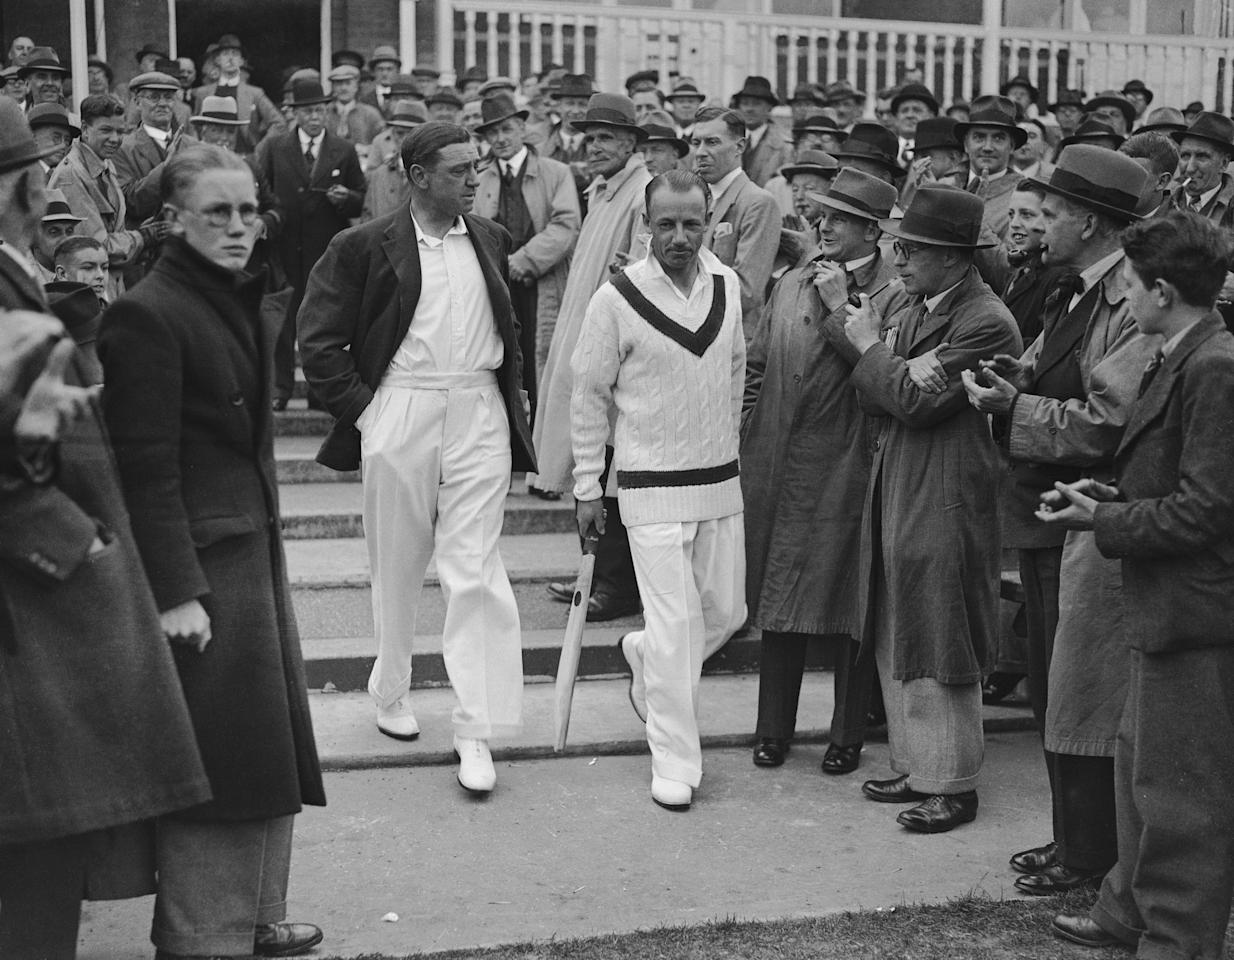 1st June 1938: English cricketer Walter 'Wally' Hammond (1903 - 1965) and Australian cricketer Sir Don Bradman (1908 - 2001) going on for the toss in the first England v Australia test match at Trent Bridge, Nottingham, England. Sir Donald Bradman was the first cricketer to be knighted in 1949 for his services to cricket. (Photo by Central Press/Getty Images)